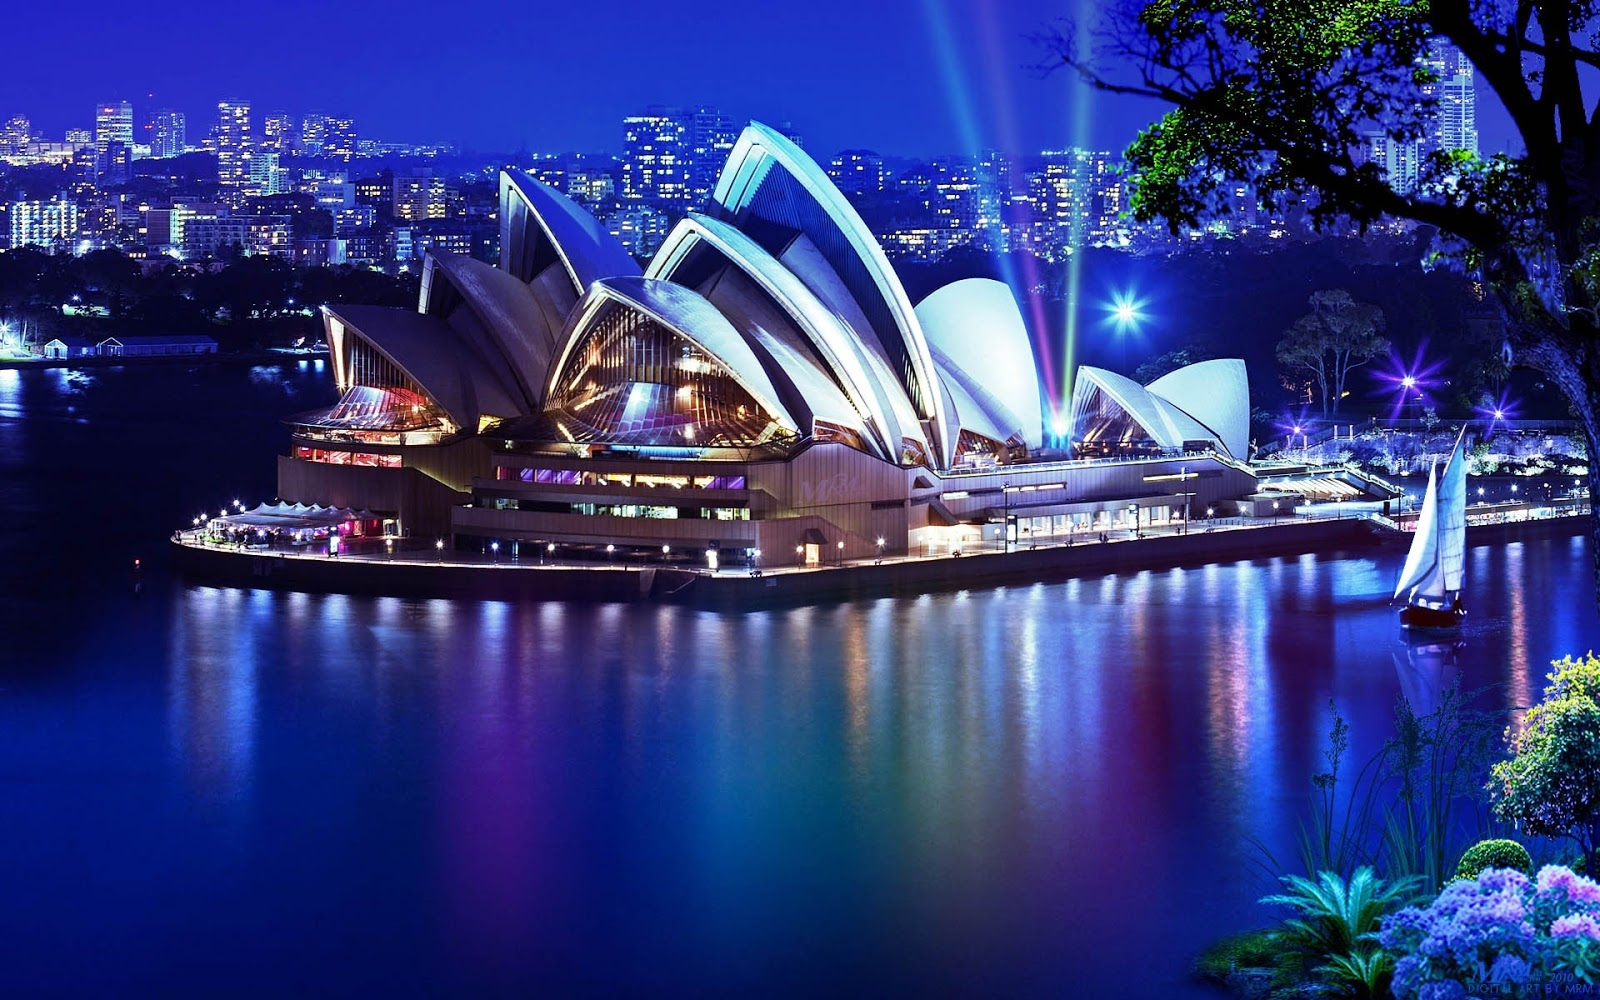 a hd wallpapers: sydney opera house awesome hd wallpapers 8k resolution